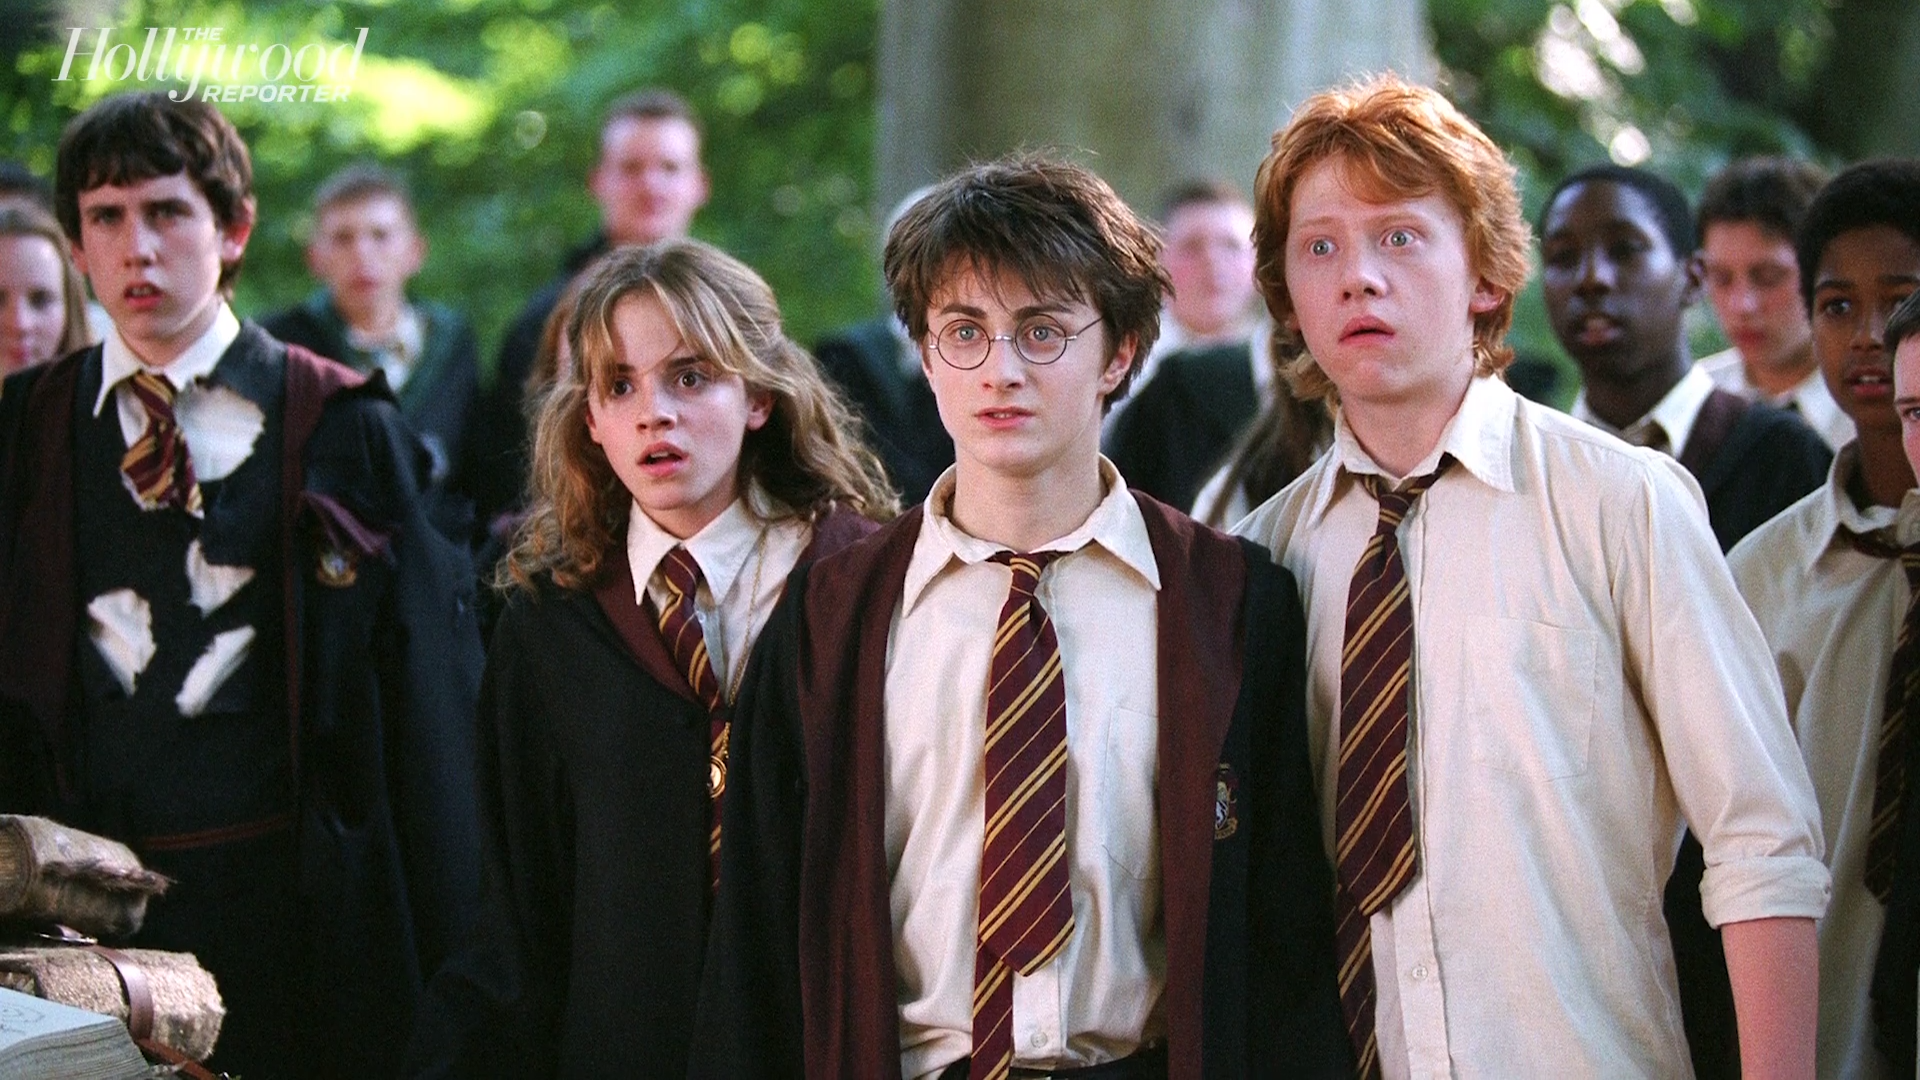 Harry Potter Films to Stream on NBCUniversal's Peacock